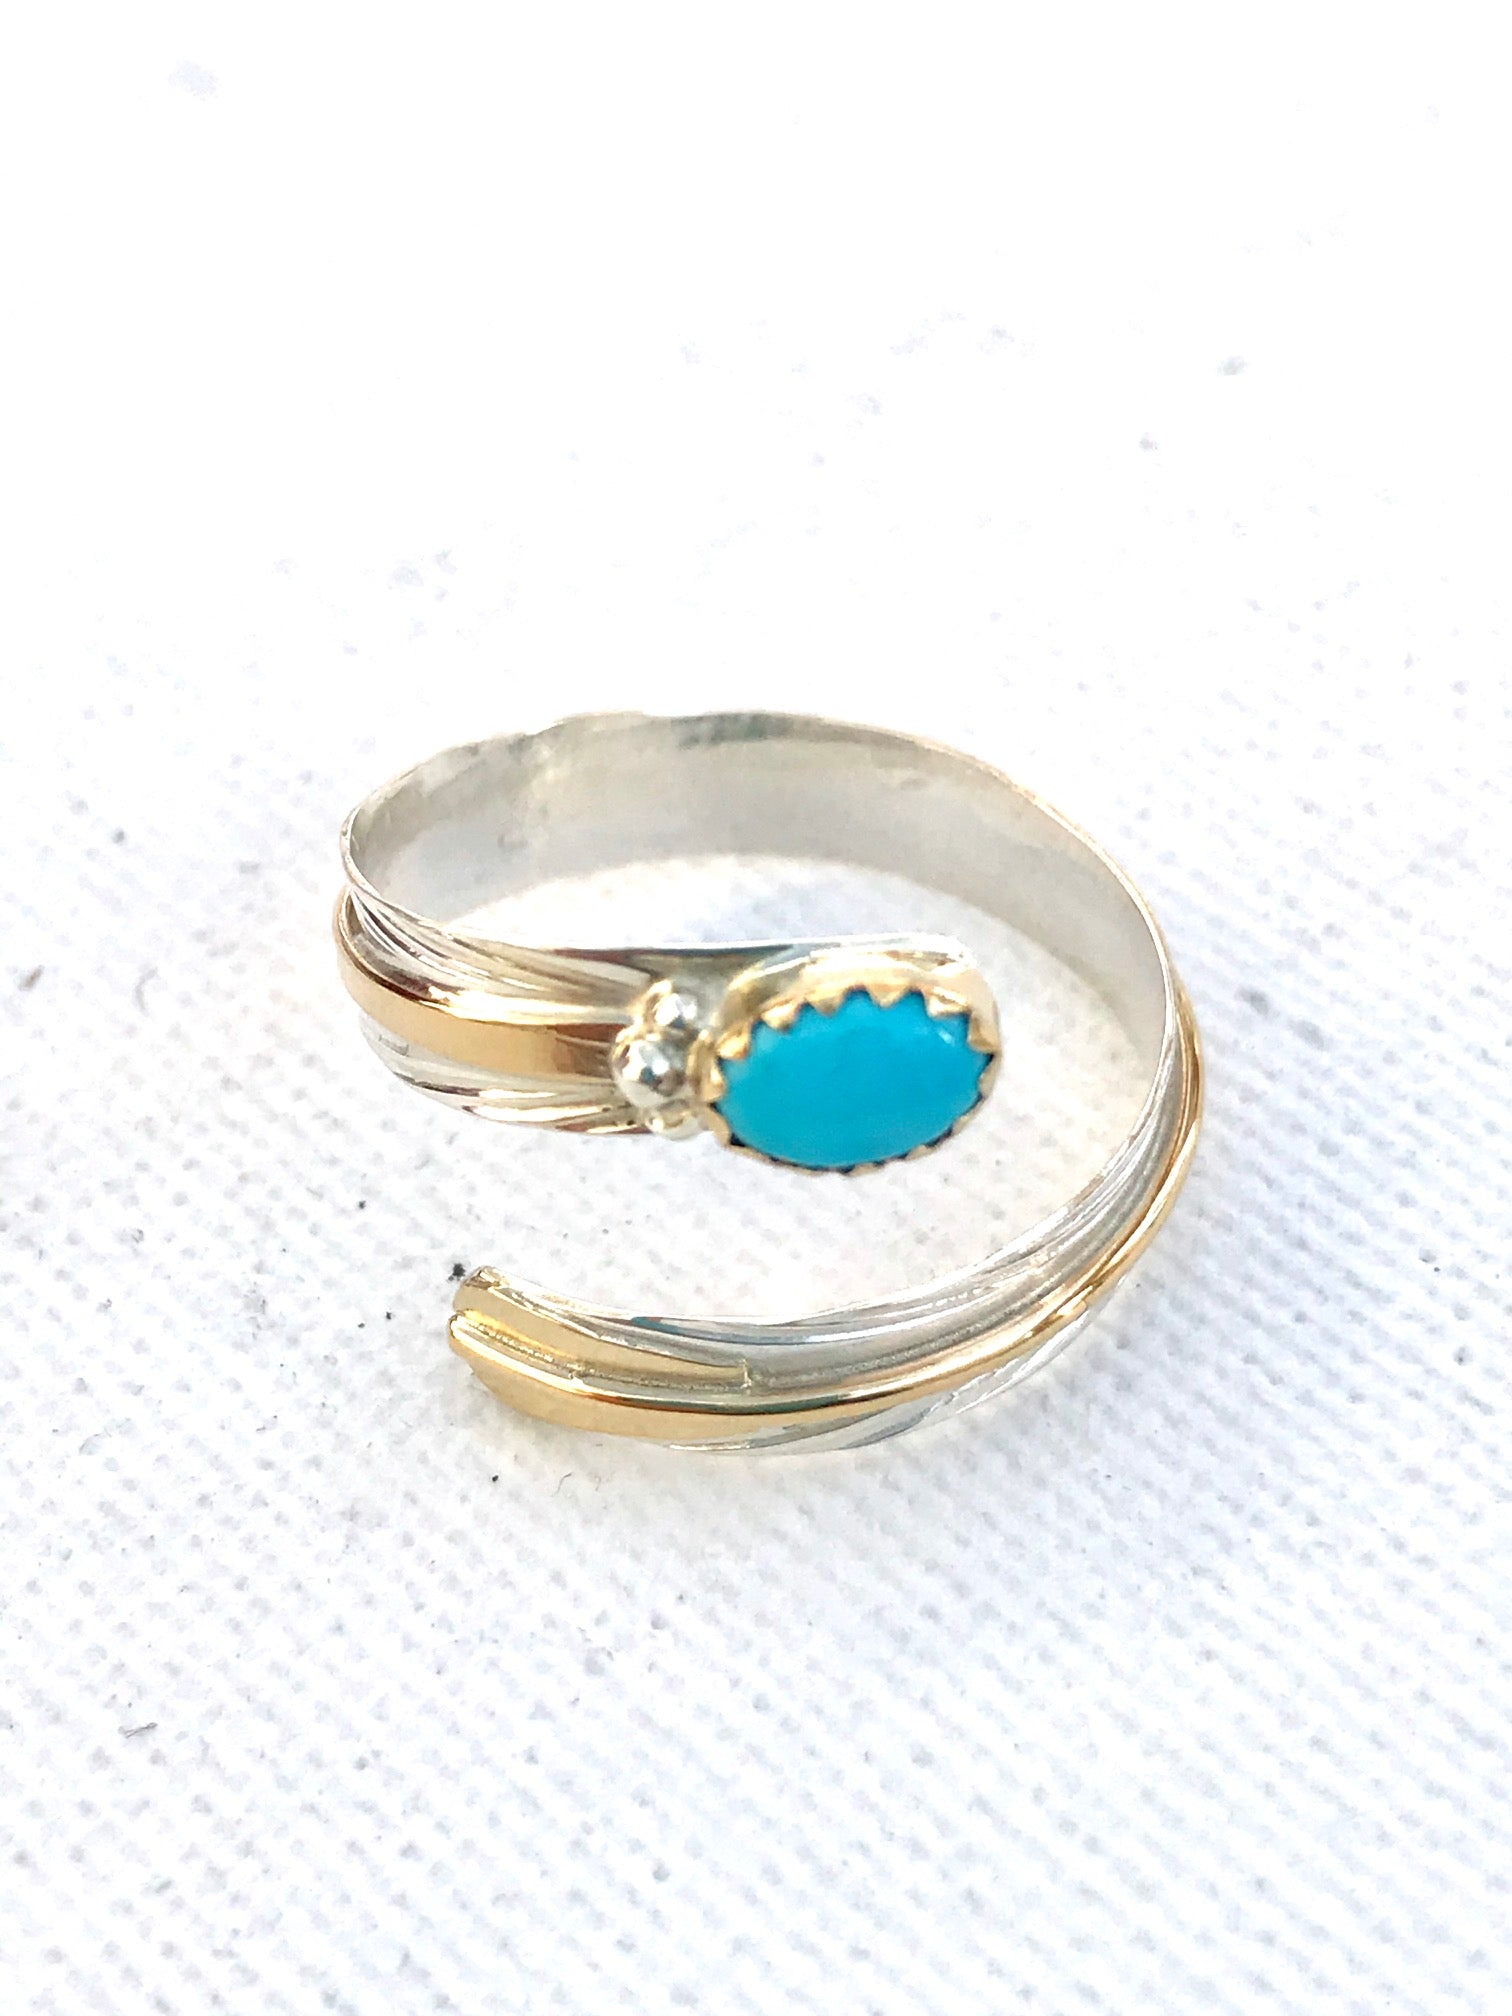 Sterling silver 14 k gold ring